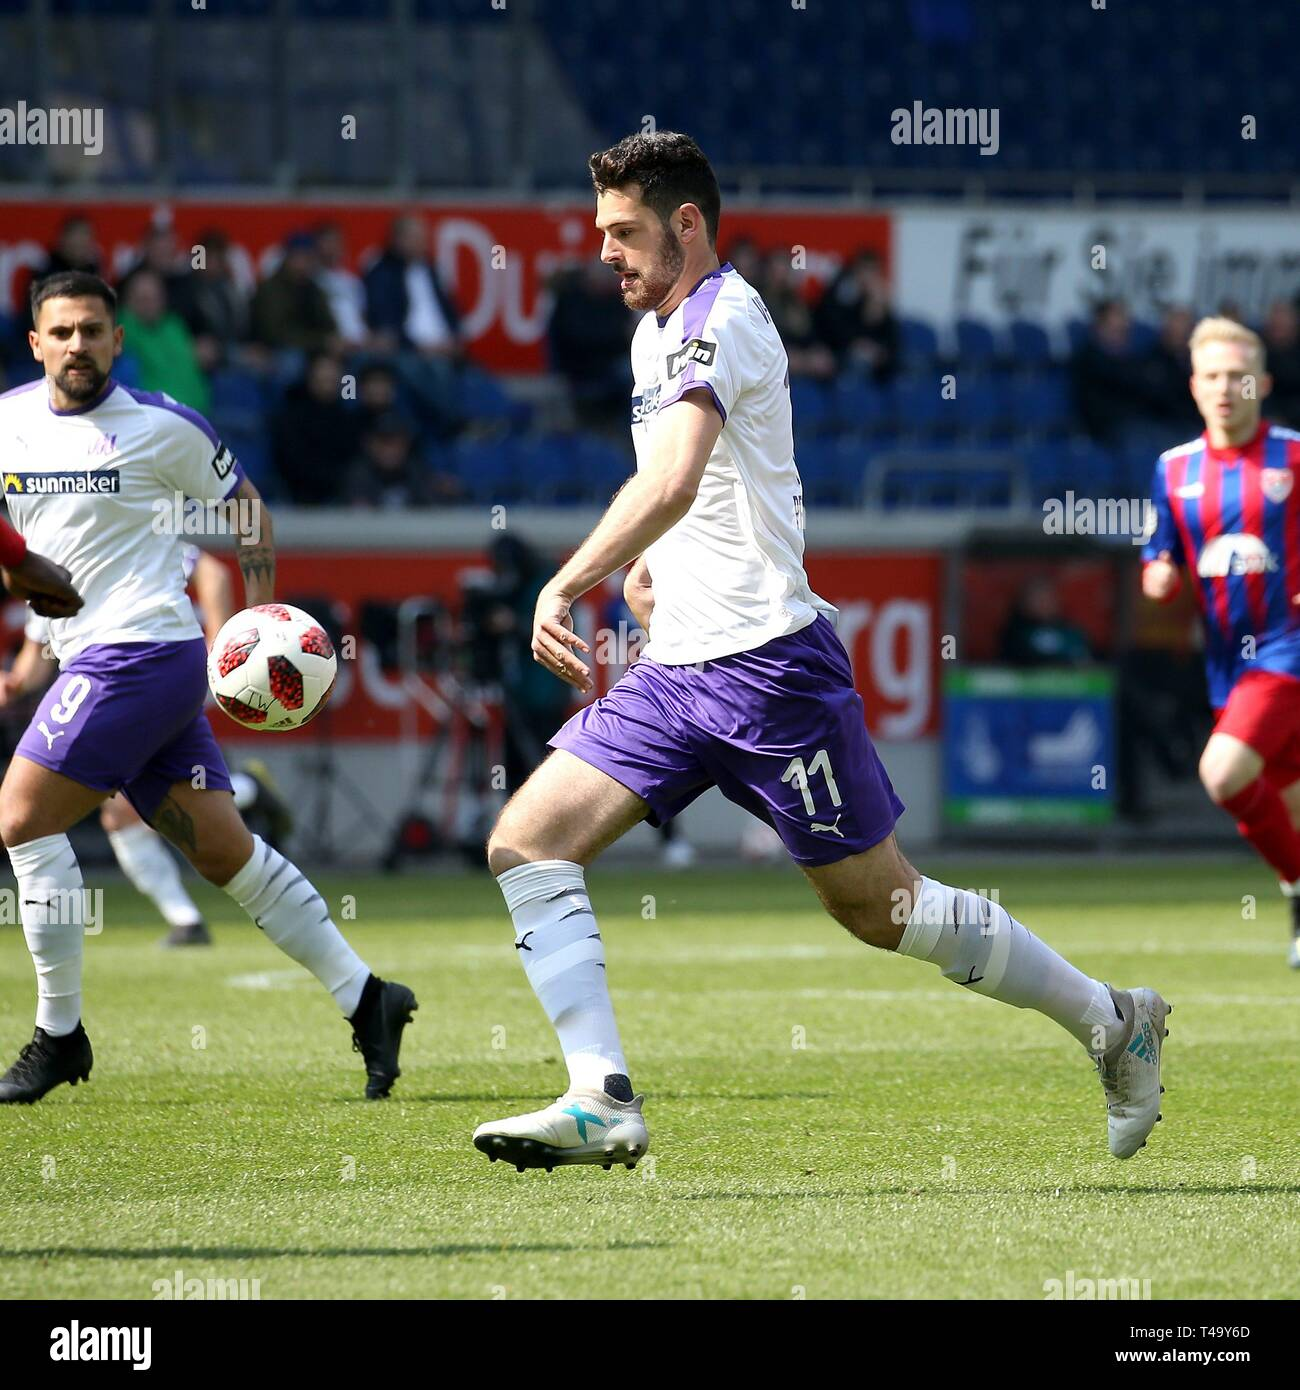 Duisburg, Deutschland. 14th Apr, 2019. firo: 14.04.2019 Football, 3. Bundesliga, season 2018/2019 KFC Uerdingen 05 - VfL Osnabróck Luca Pfeiffer (# 11, VfL OsnabrÃ_ck) Single action | usage worldwide Credit: dpa/Alamy Live News - Stock Image